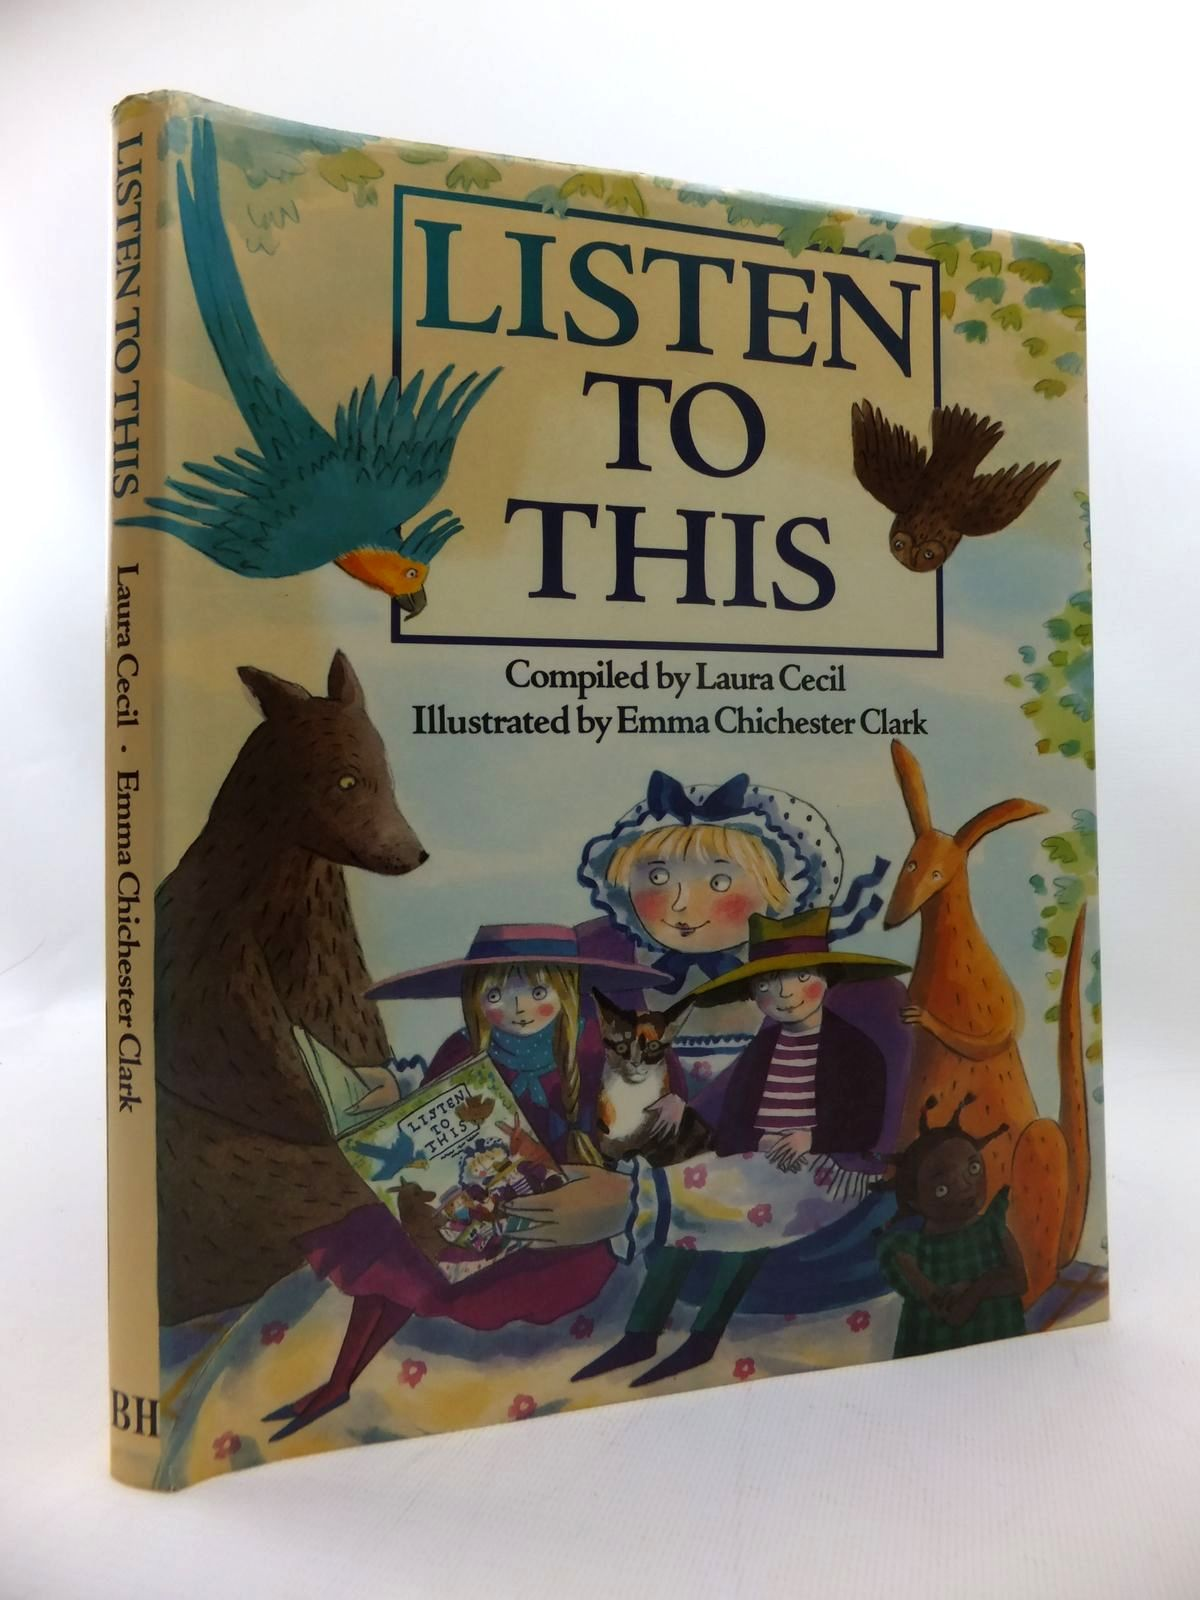 Photo of LISTEN TO THIS written by Cecil, Laura et al,  illustrated by Clark, Emma Chichester published by The Bodley Head (STOCK CODE: 1814590)  for sale by Stella & Rose's Books